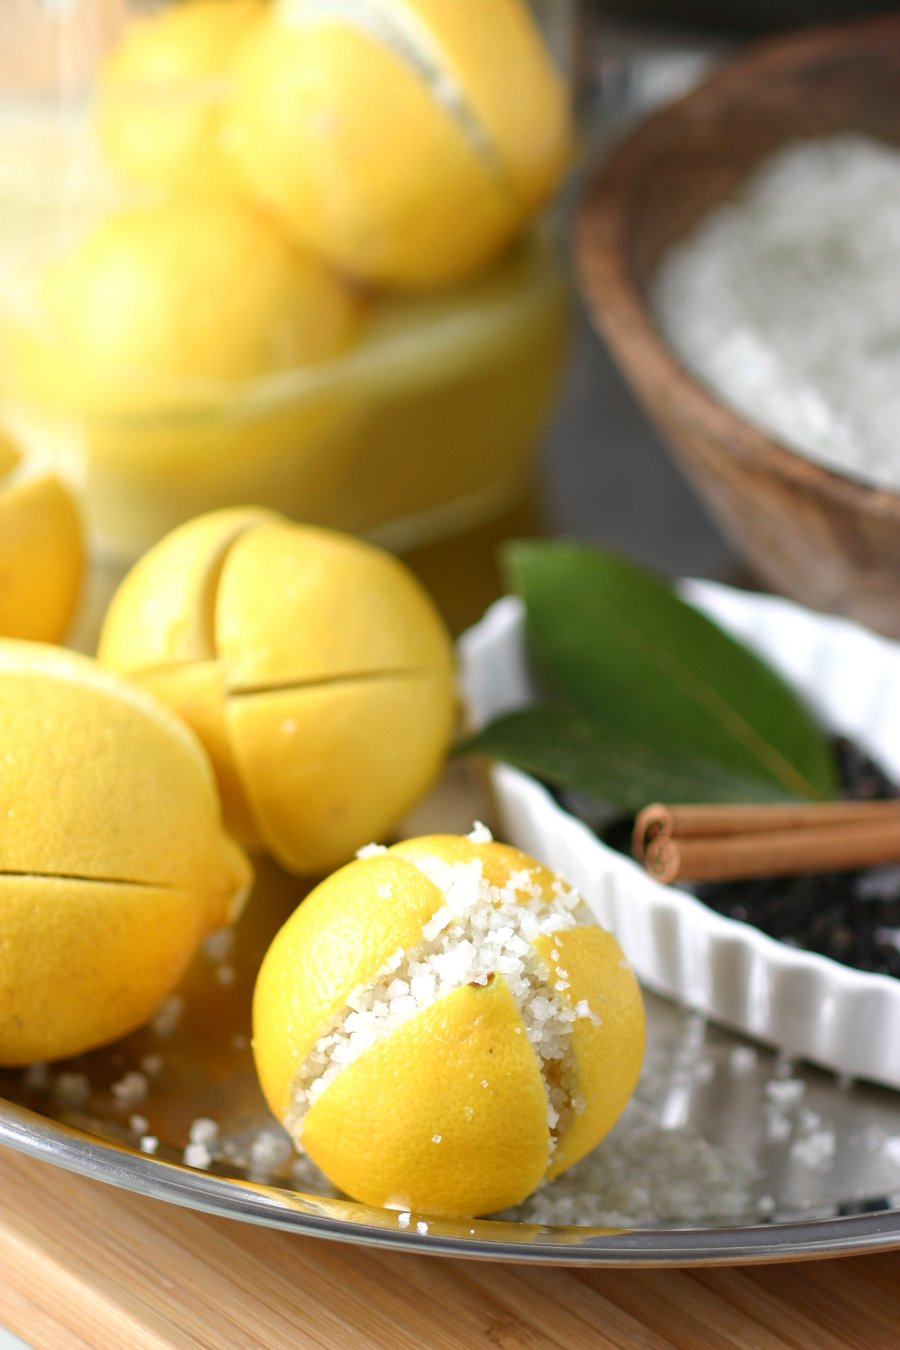 Give your favorite Moroccan and North African dishes that zesty, authentic taste with this really easy recipe for Homemade Preserved Lemons!